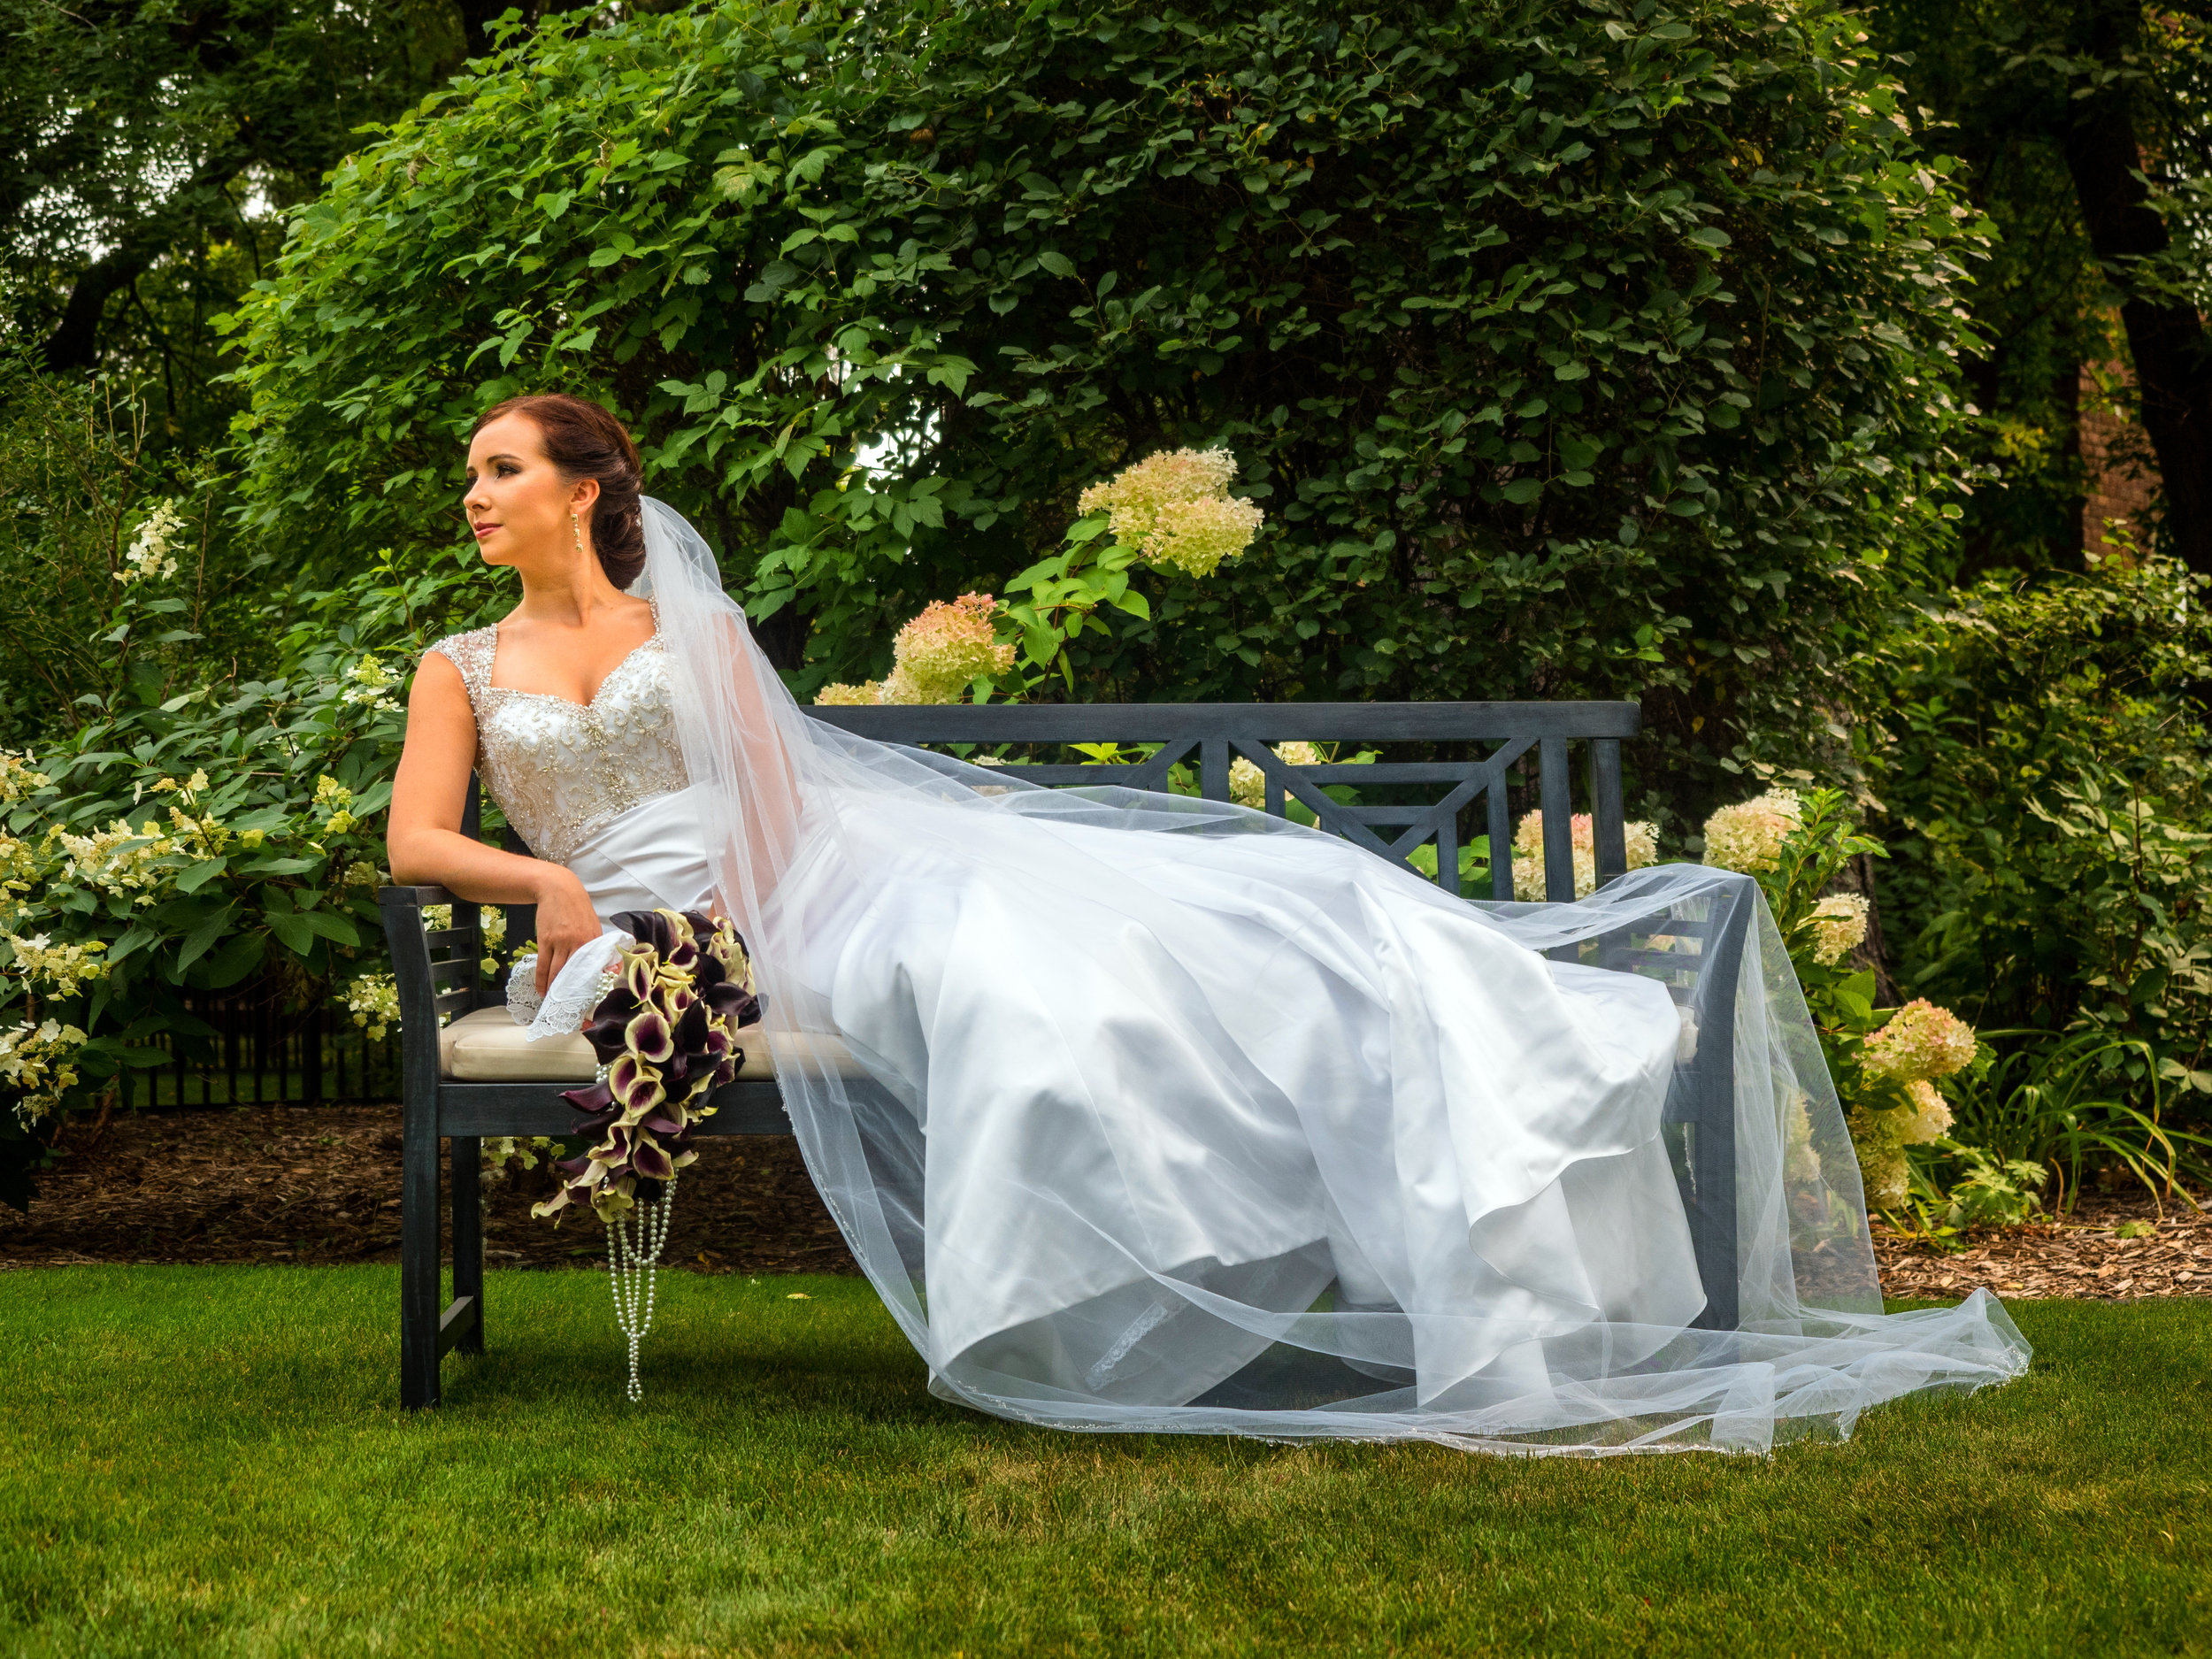 Grand Forks Wedding Photographer 6547